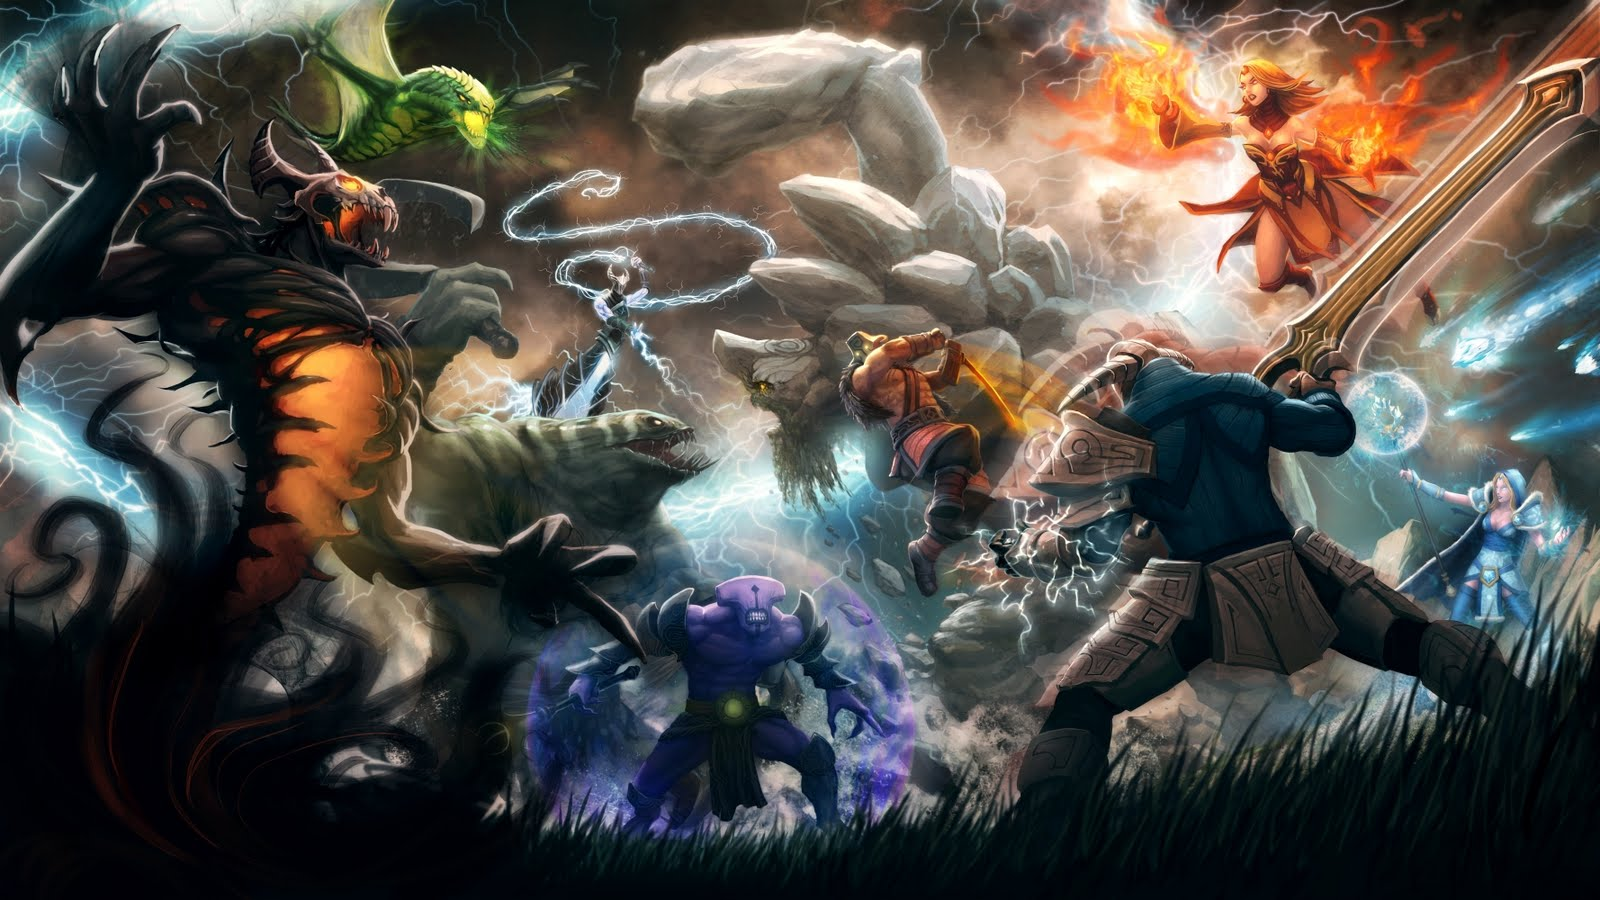 new dota 2 wallpapers